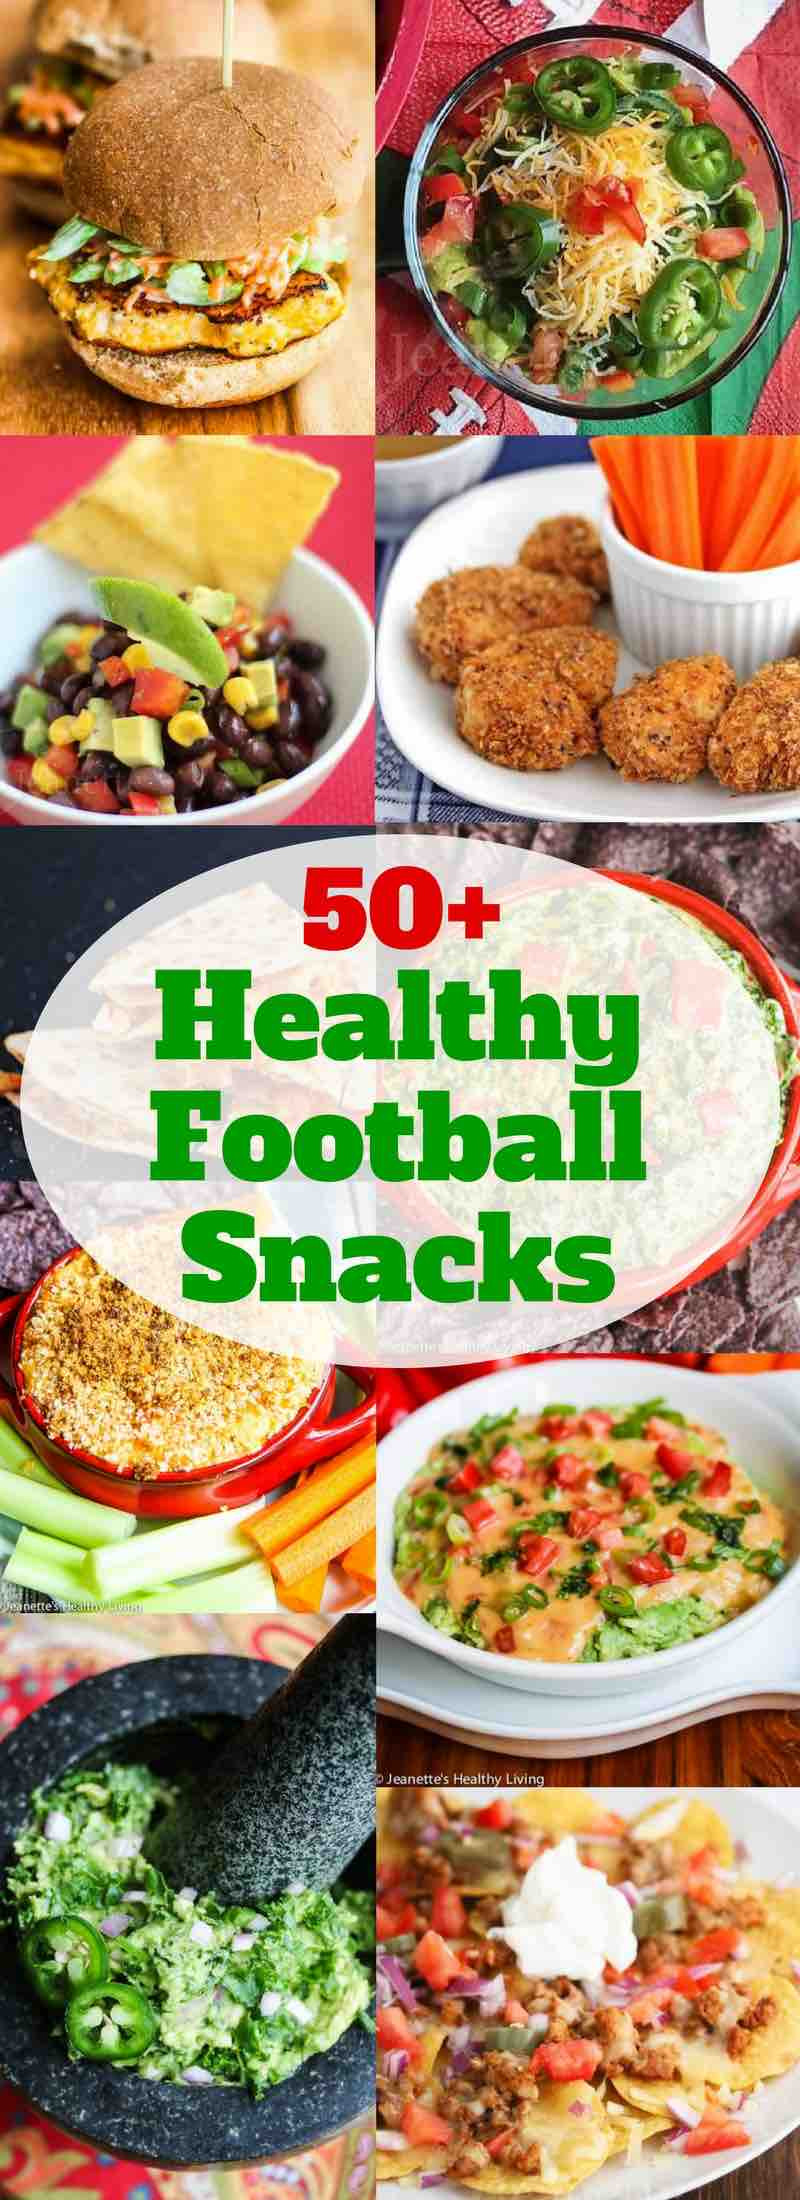 Healthy Snacks for Football Games the Best Ideas for 50 Healthy Football Snacks Jeanette S Healthy Living